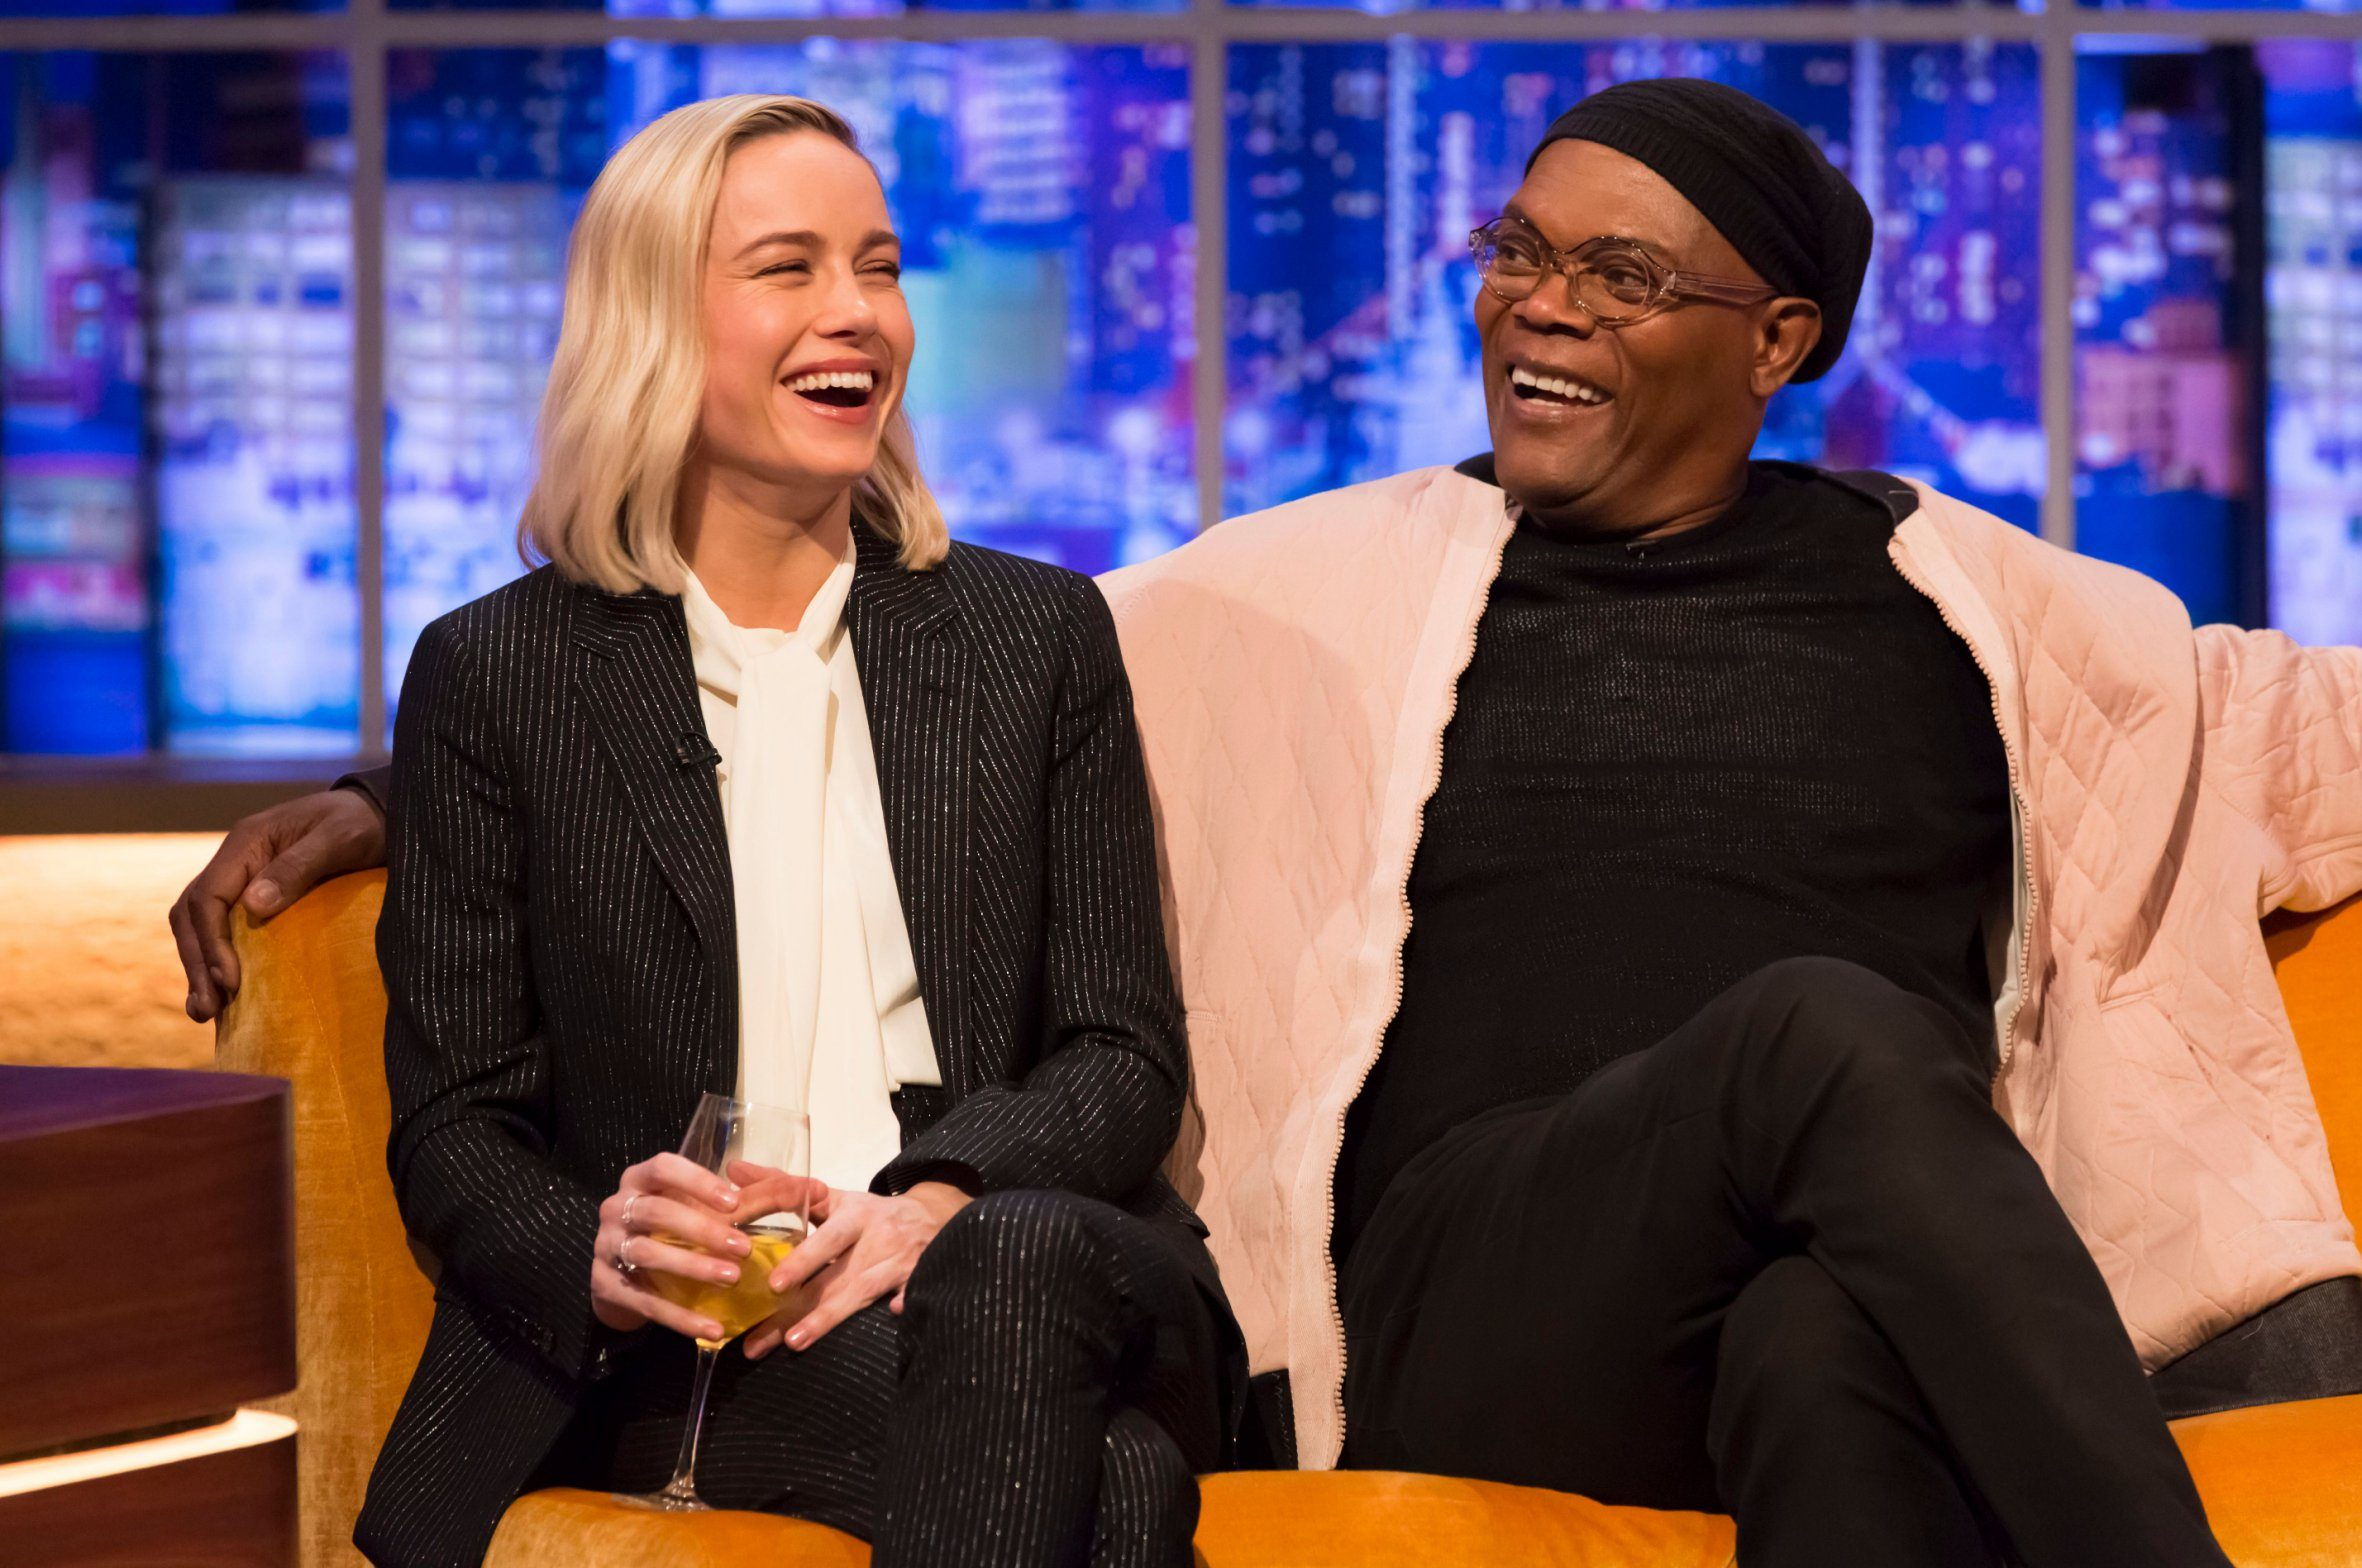 Mandatory Credit: Brian J Ritchie/Hotsauce Editorial Use Only Mandatory Credit: Photo by Brian J Ritchie/Hotsauce/REX (10125518ac) Brie Larson, Samuel L Jackson 'The Jonathan Ross Show' TV show, series 14, Episode 1, London, UK - 02 Mar 2019